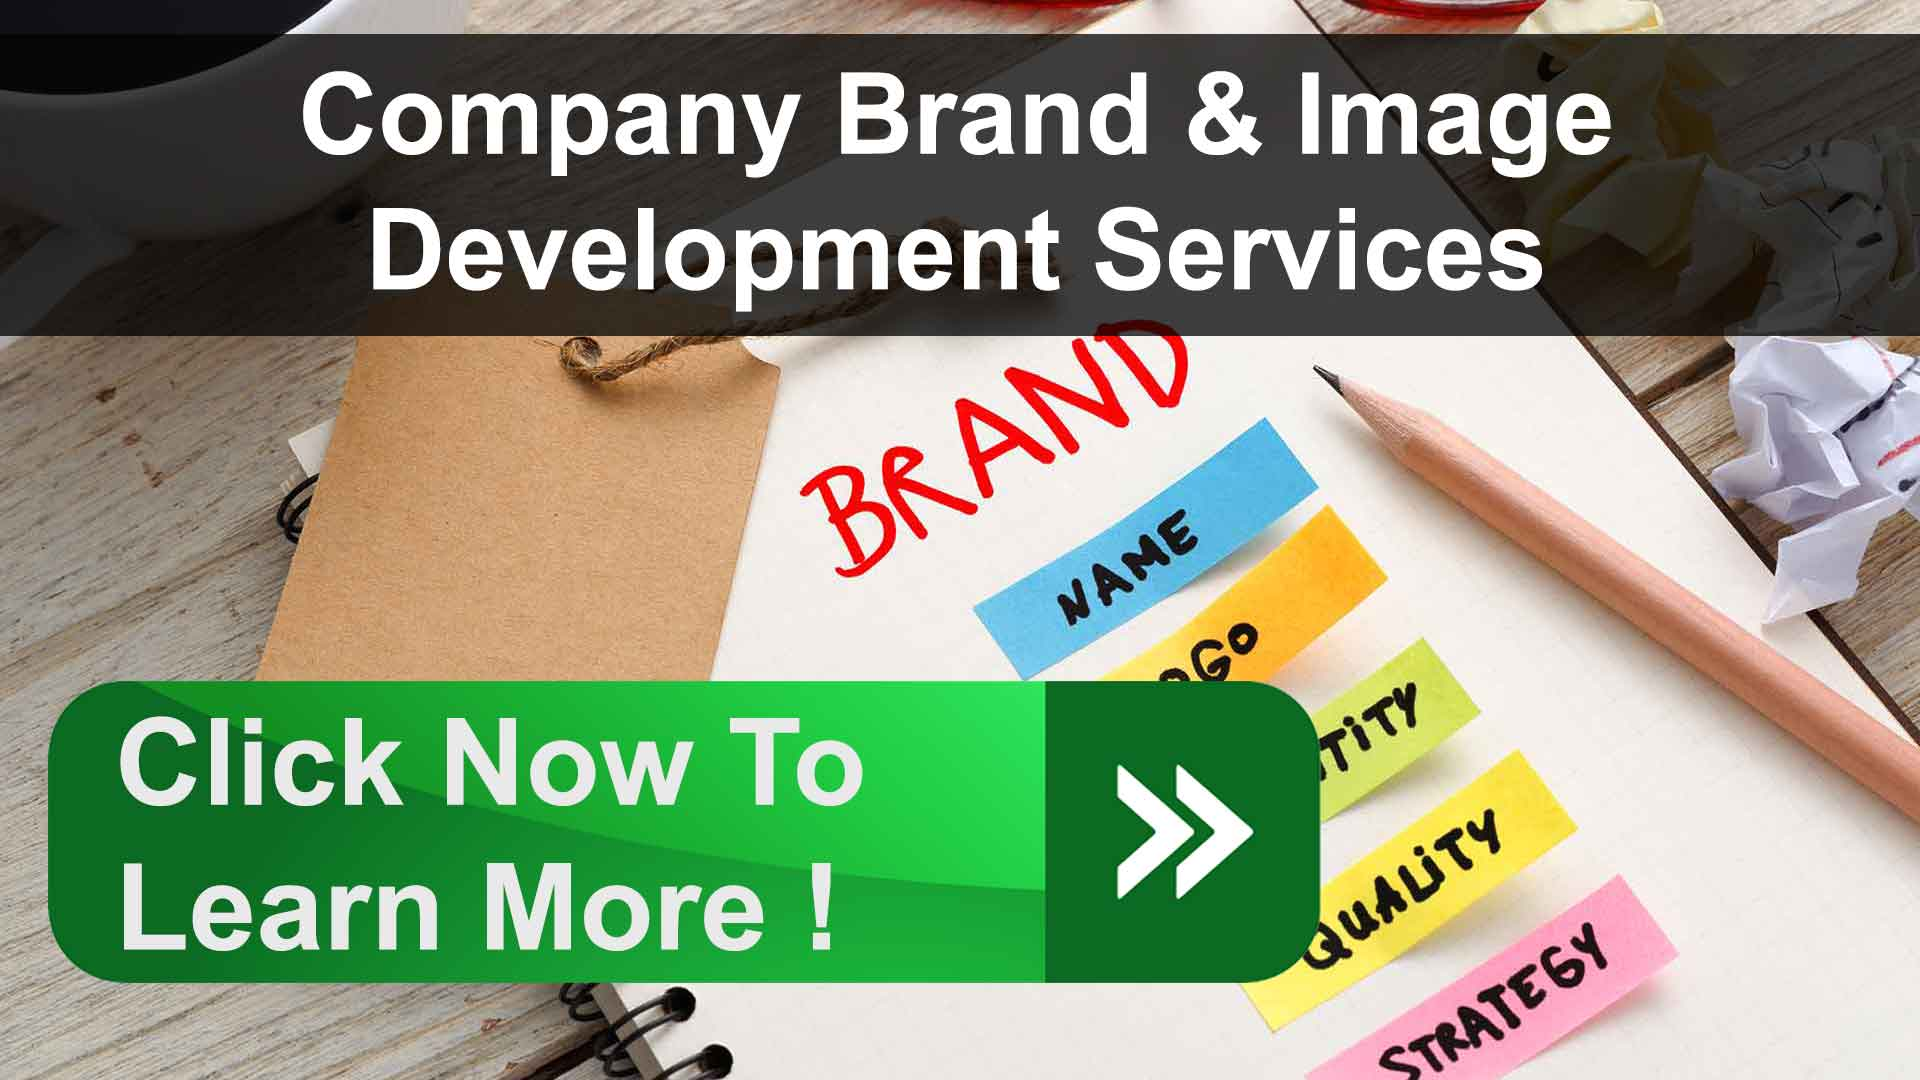 Company Brand & Image Development Services